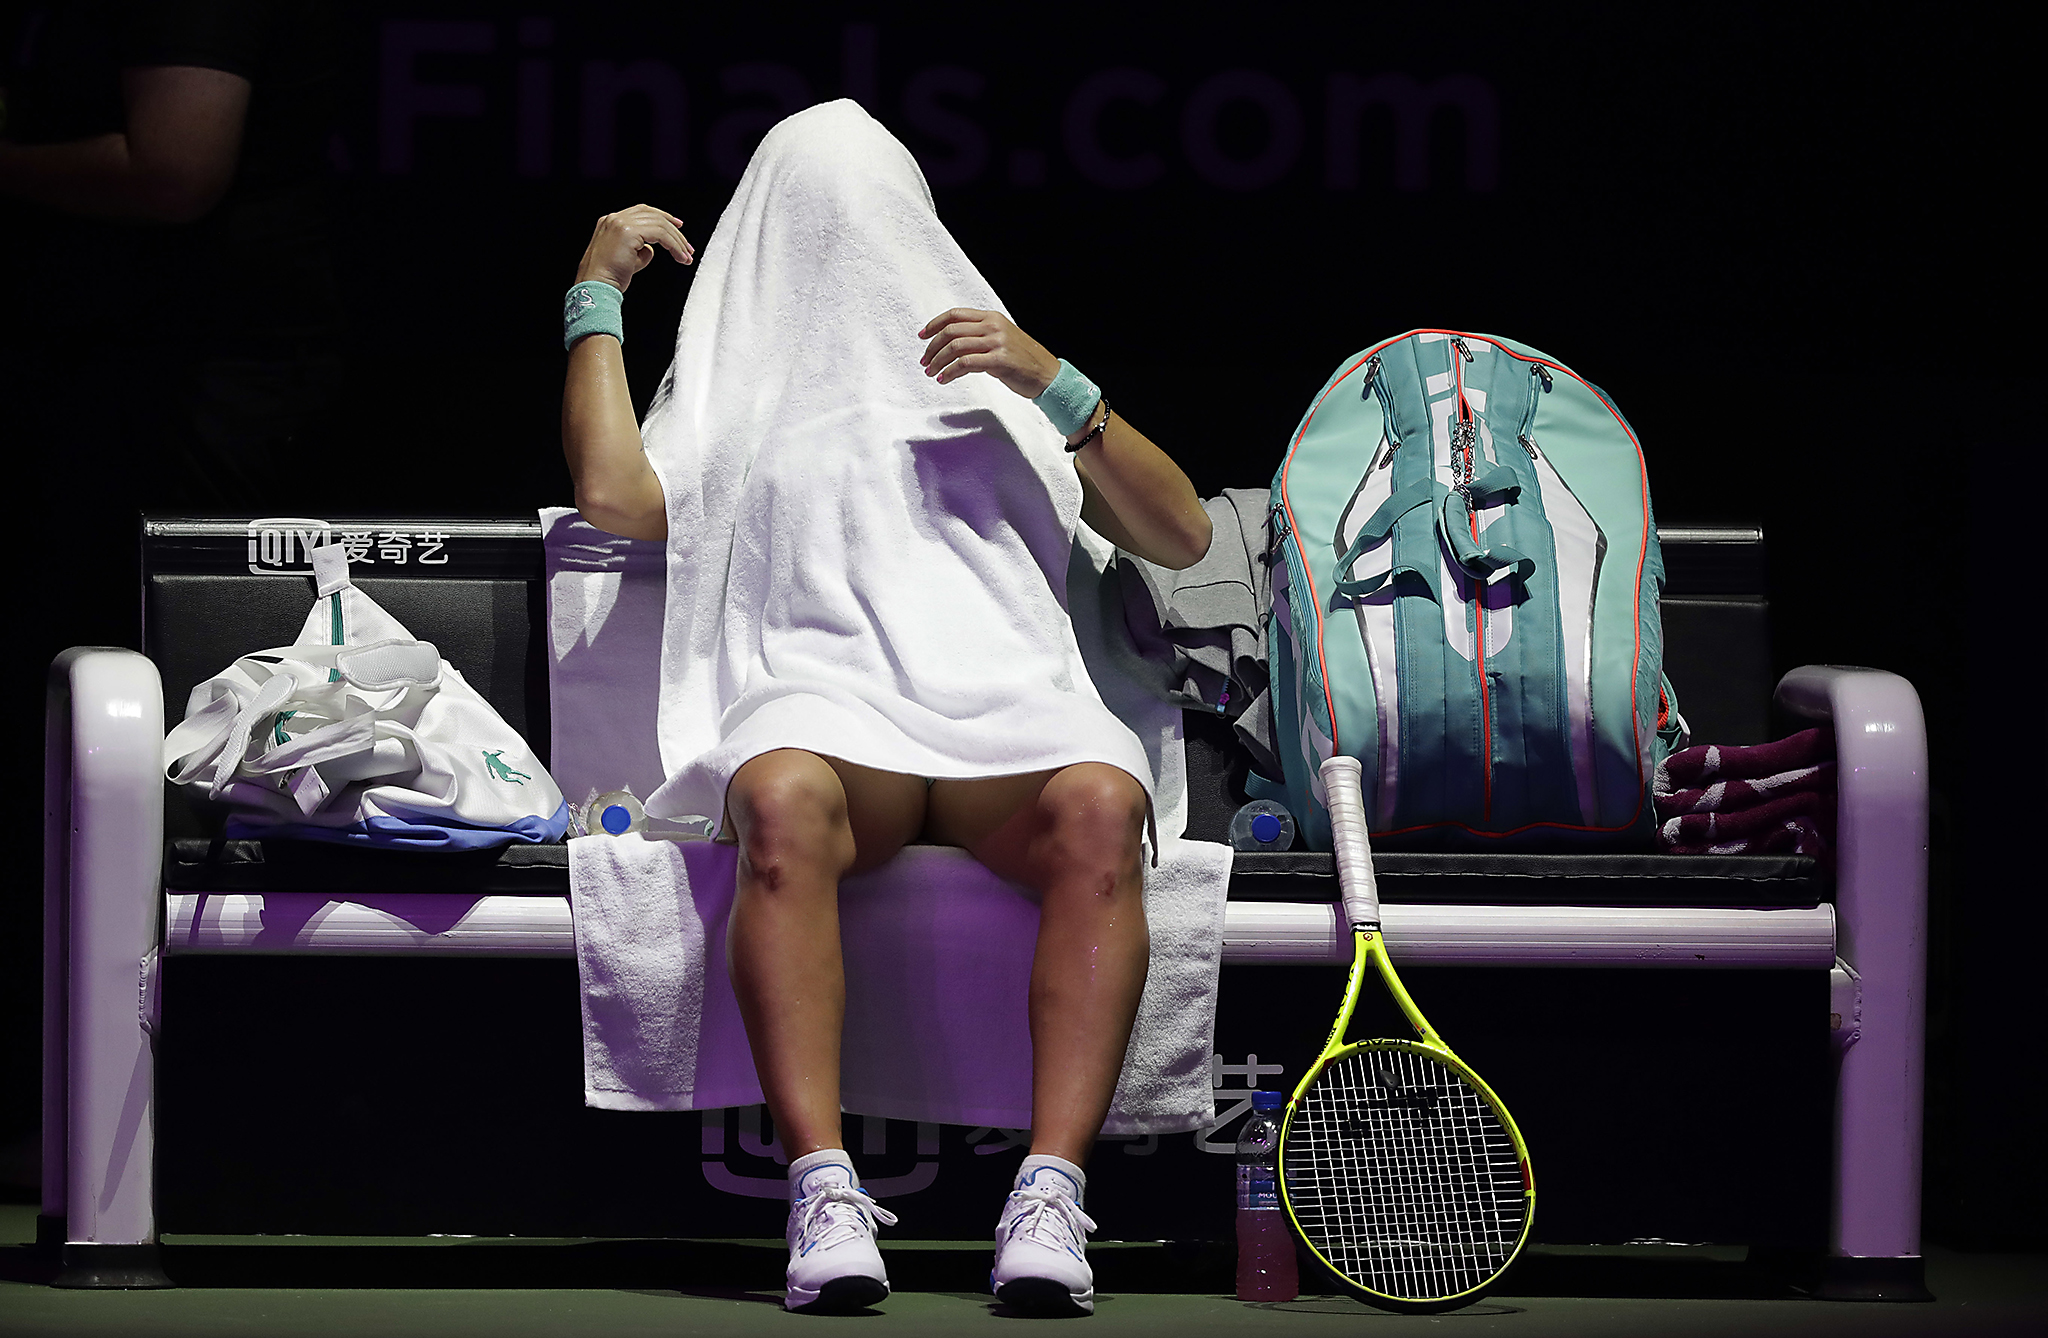 Svetlana Kuznetsova of Russia covers her head with her towel after the first set during her singles match against Garbine Muguruza of Spain at the WTA tennis tournament in Singapore, Friday, Oct. 28, 2016. (AP Photo/Wong Maye-E)